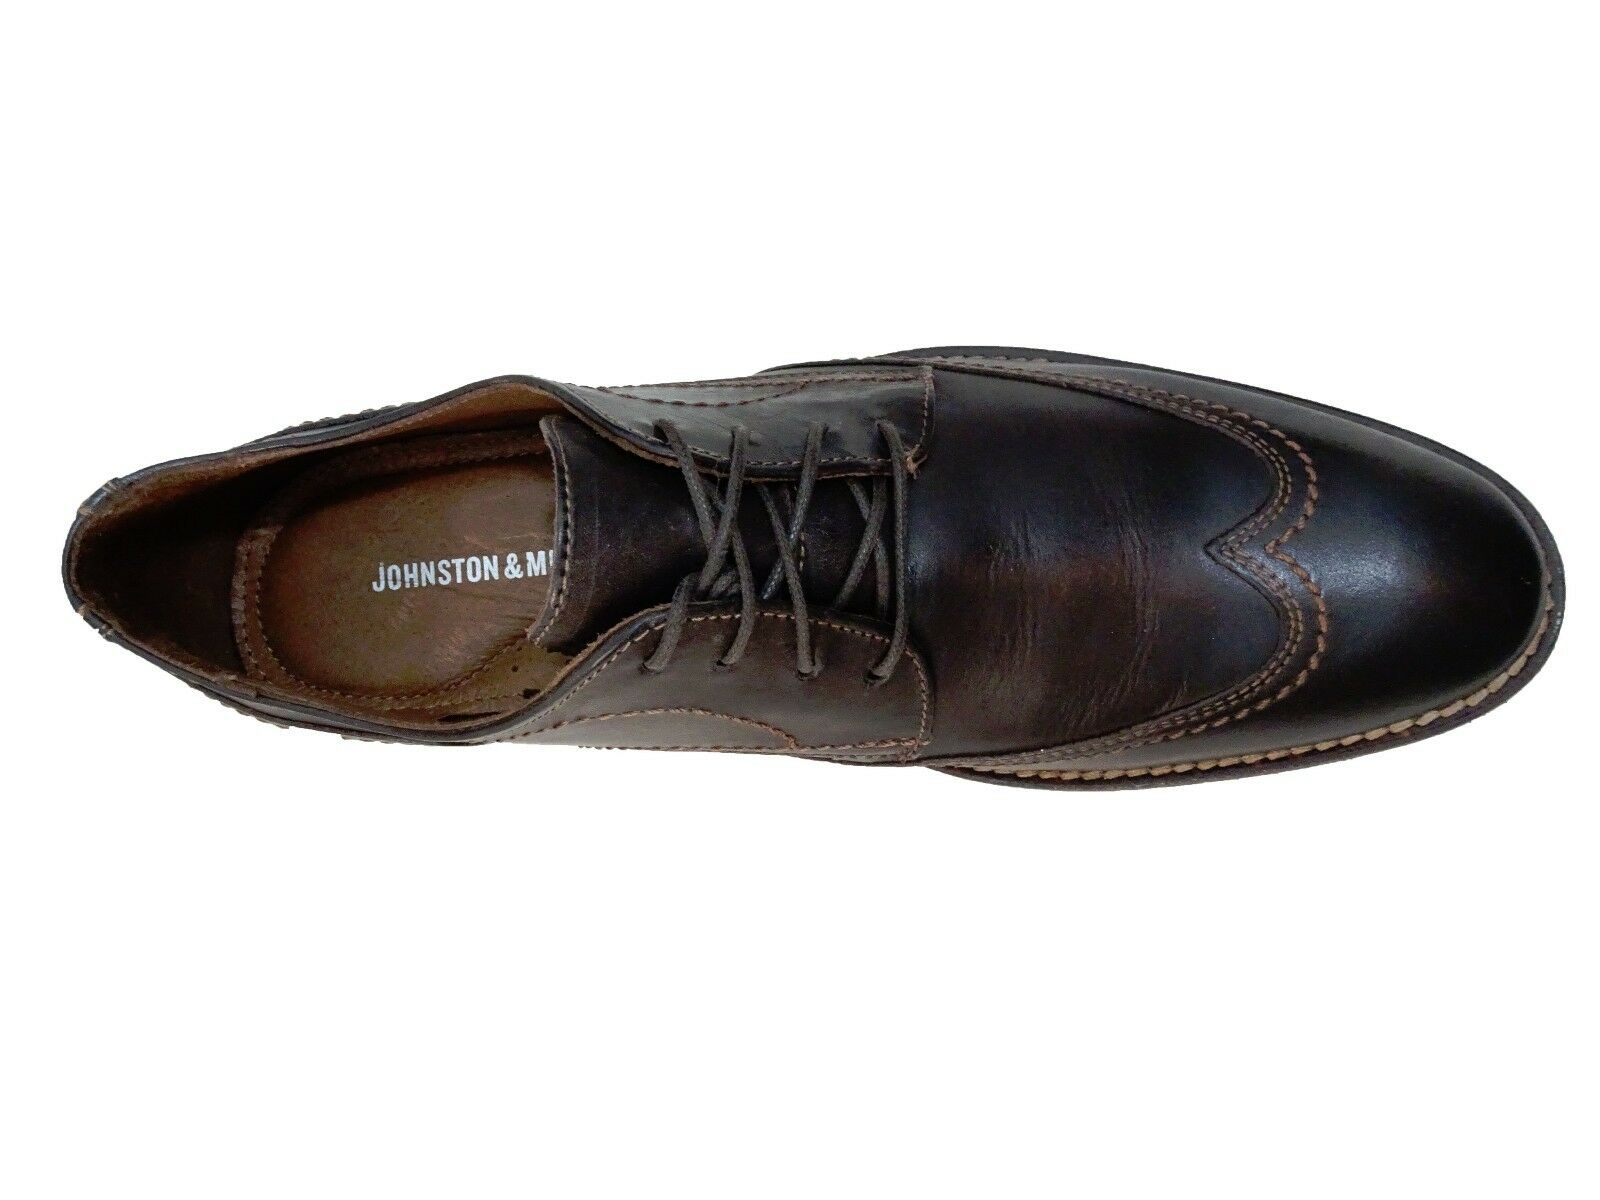 Johnston & Murphy Uomo Jarrell Jarrell Jarrell Wingtip Lace Up Derby Business Casual Dress Shoes 1529a4